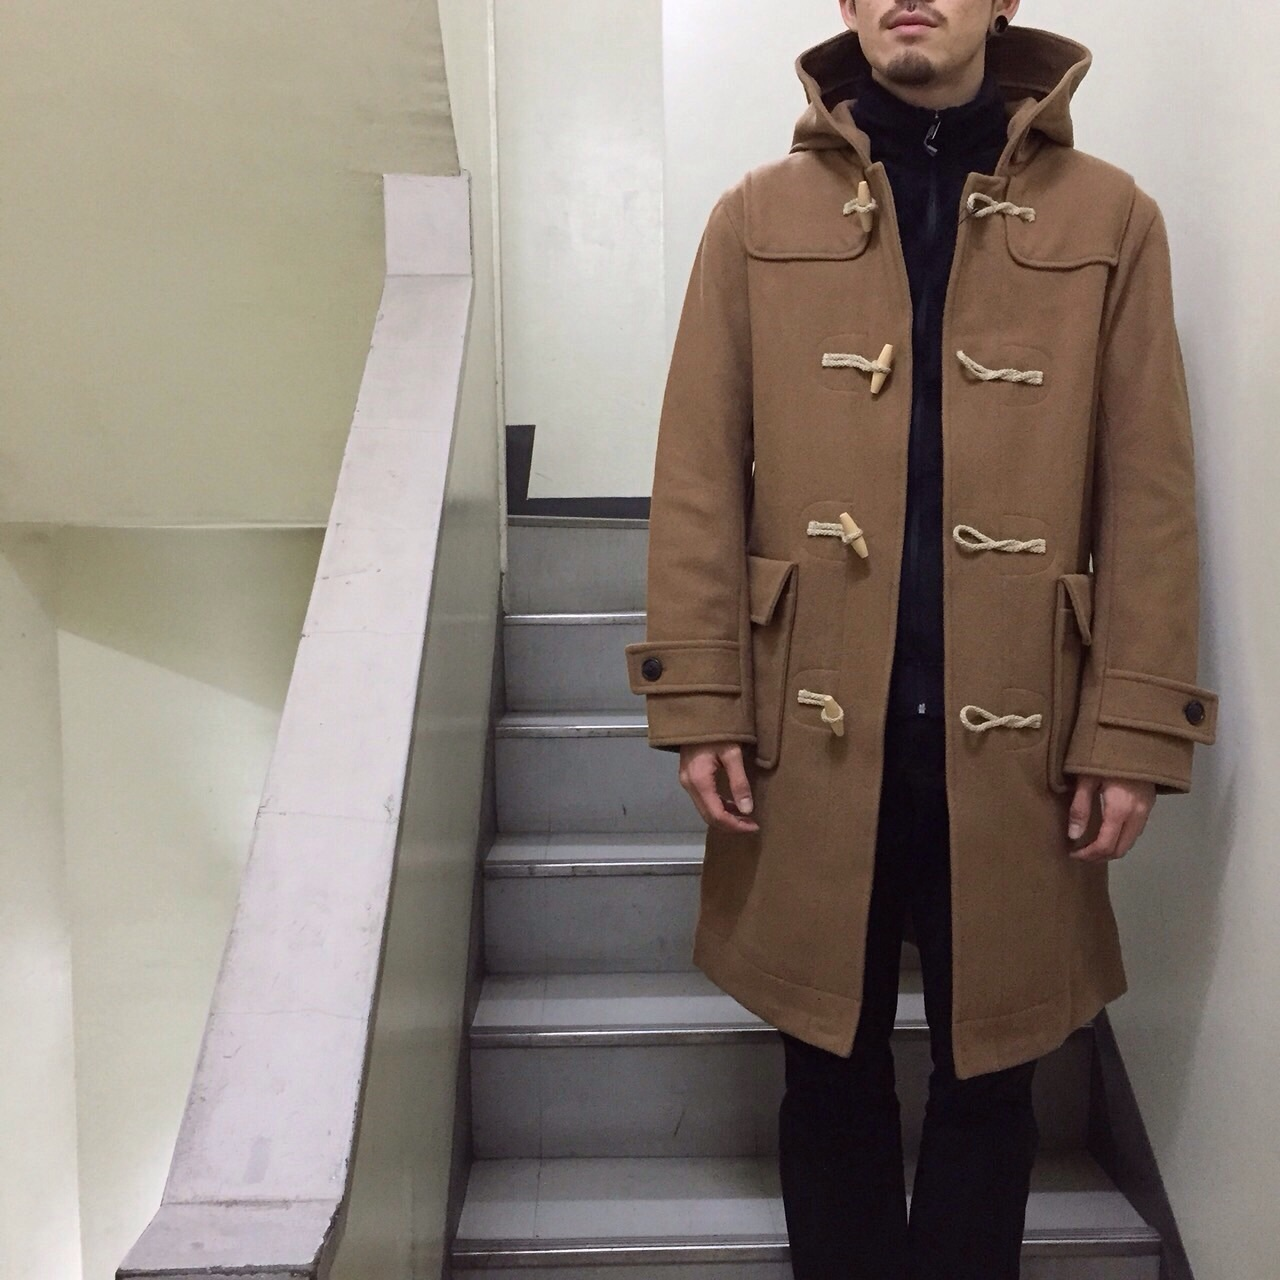 【RECOMMEND ITEM】patagonia -Freece Jacket-_b0121563_19302293.jpg